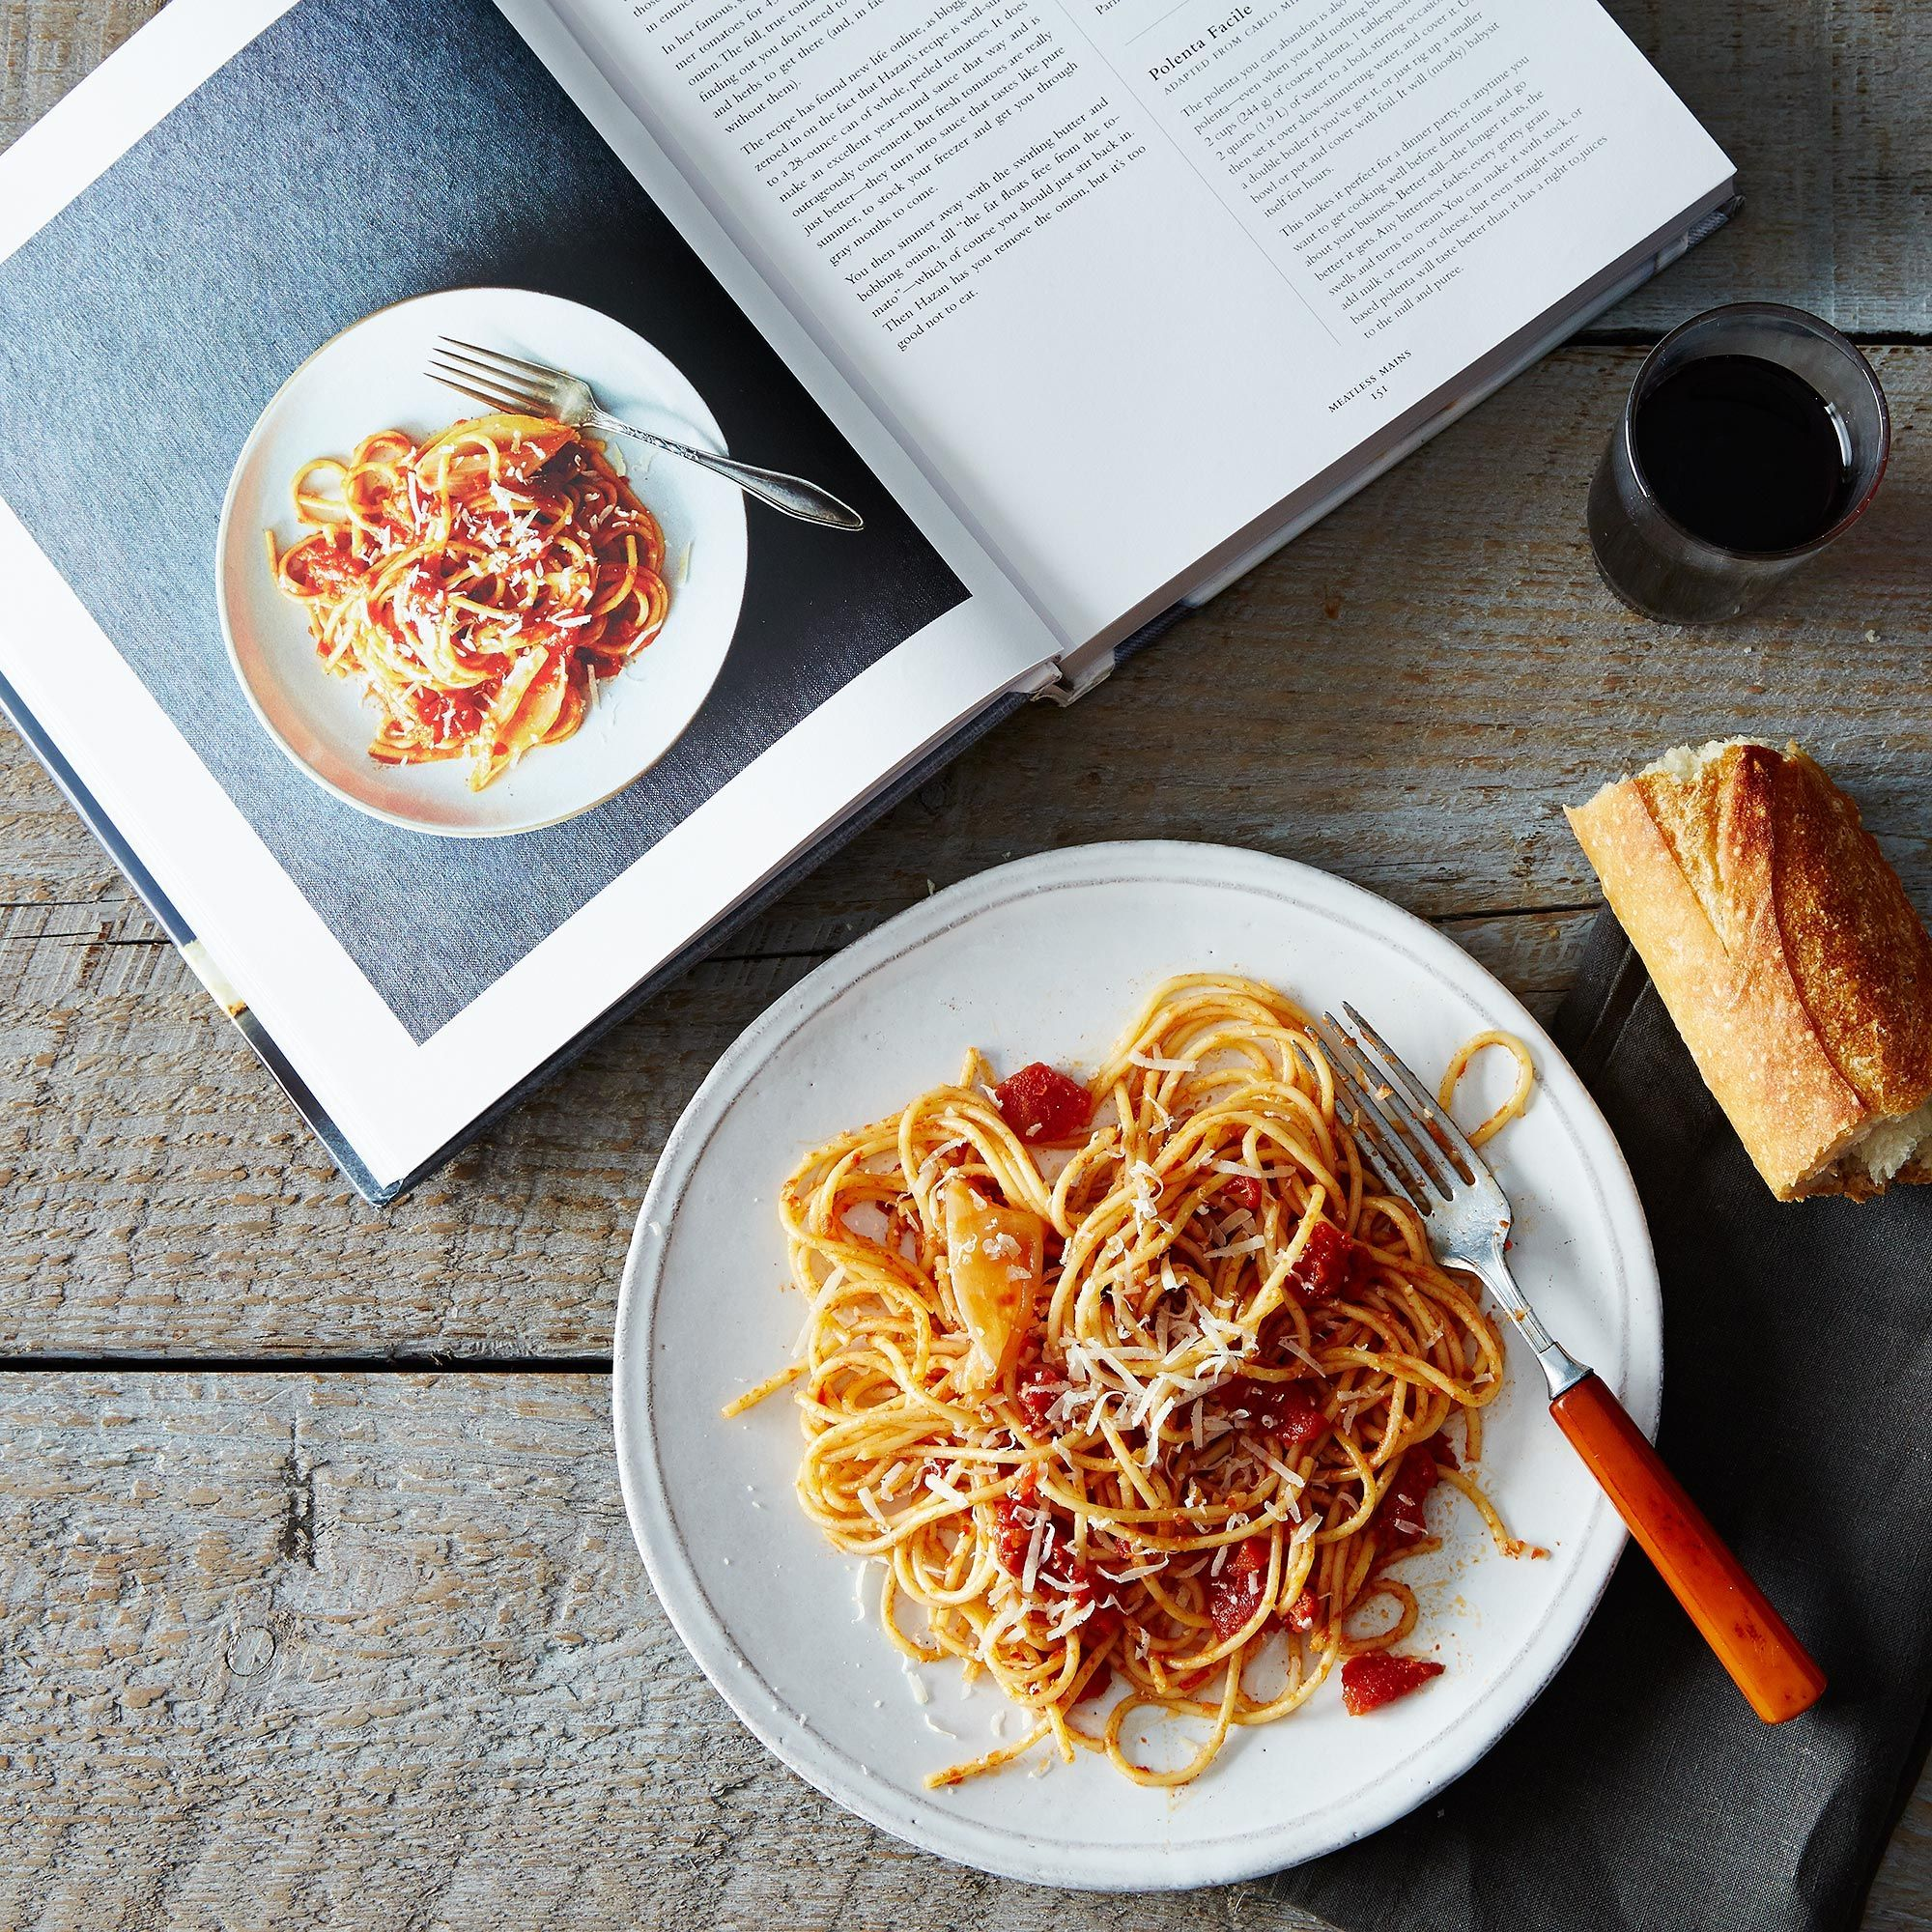 Signed copy genius recipes by kristen miglore on food52 forumfinder Choice Image